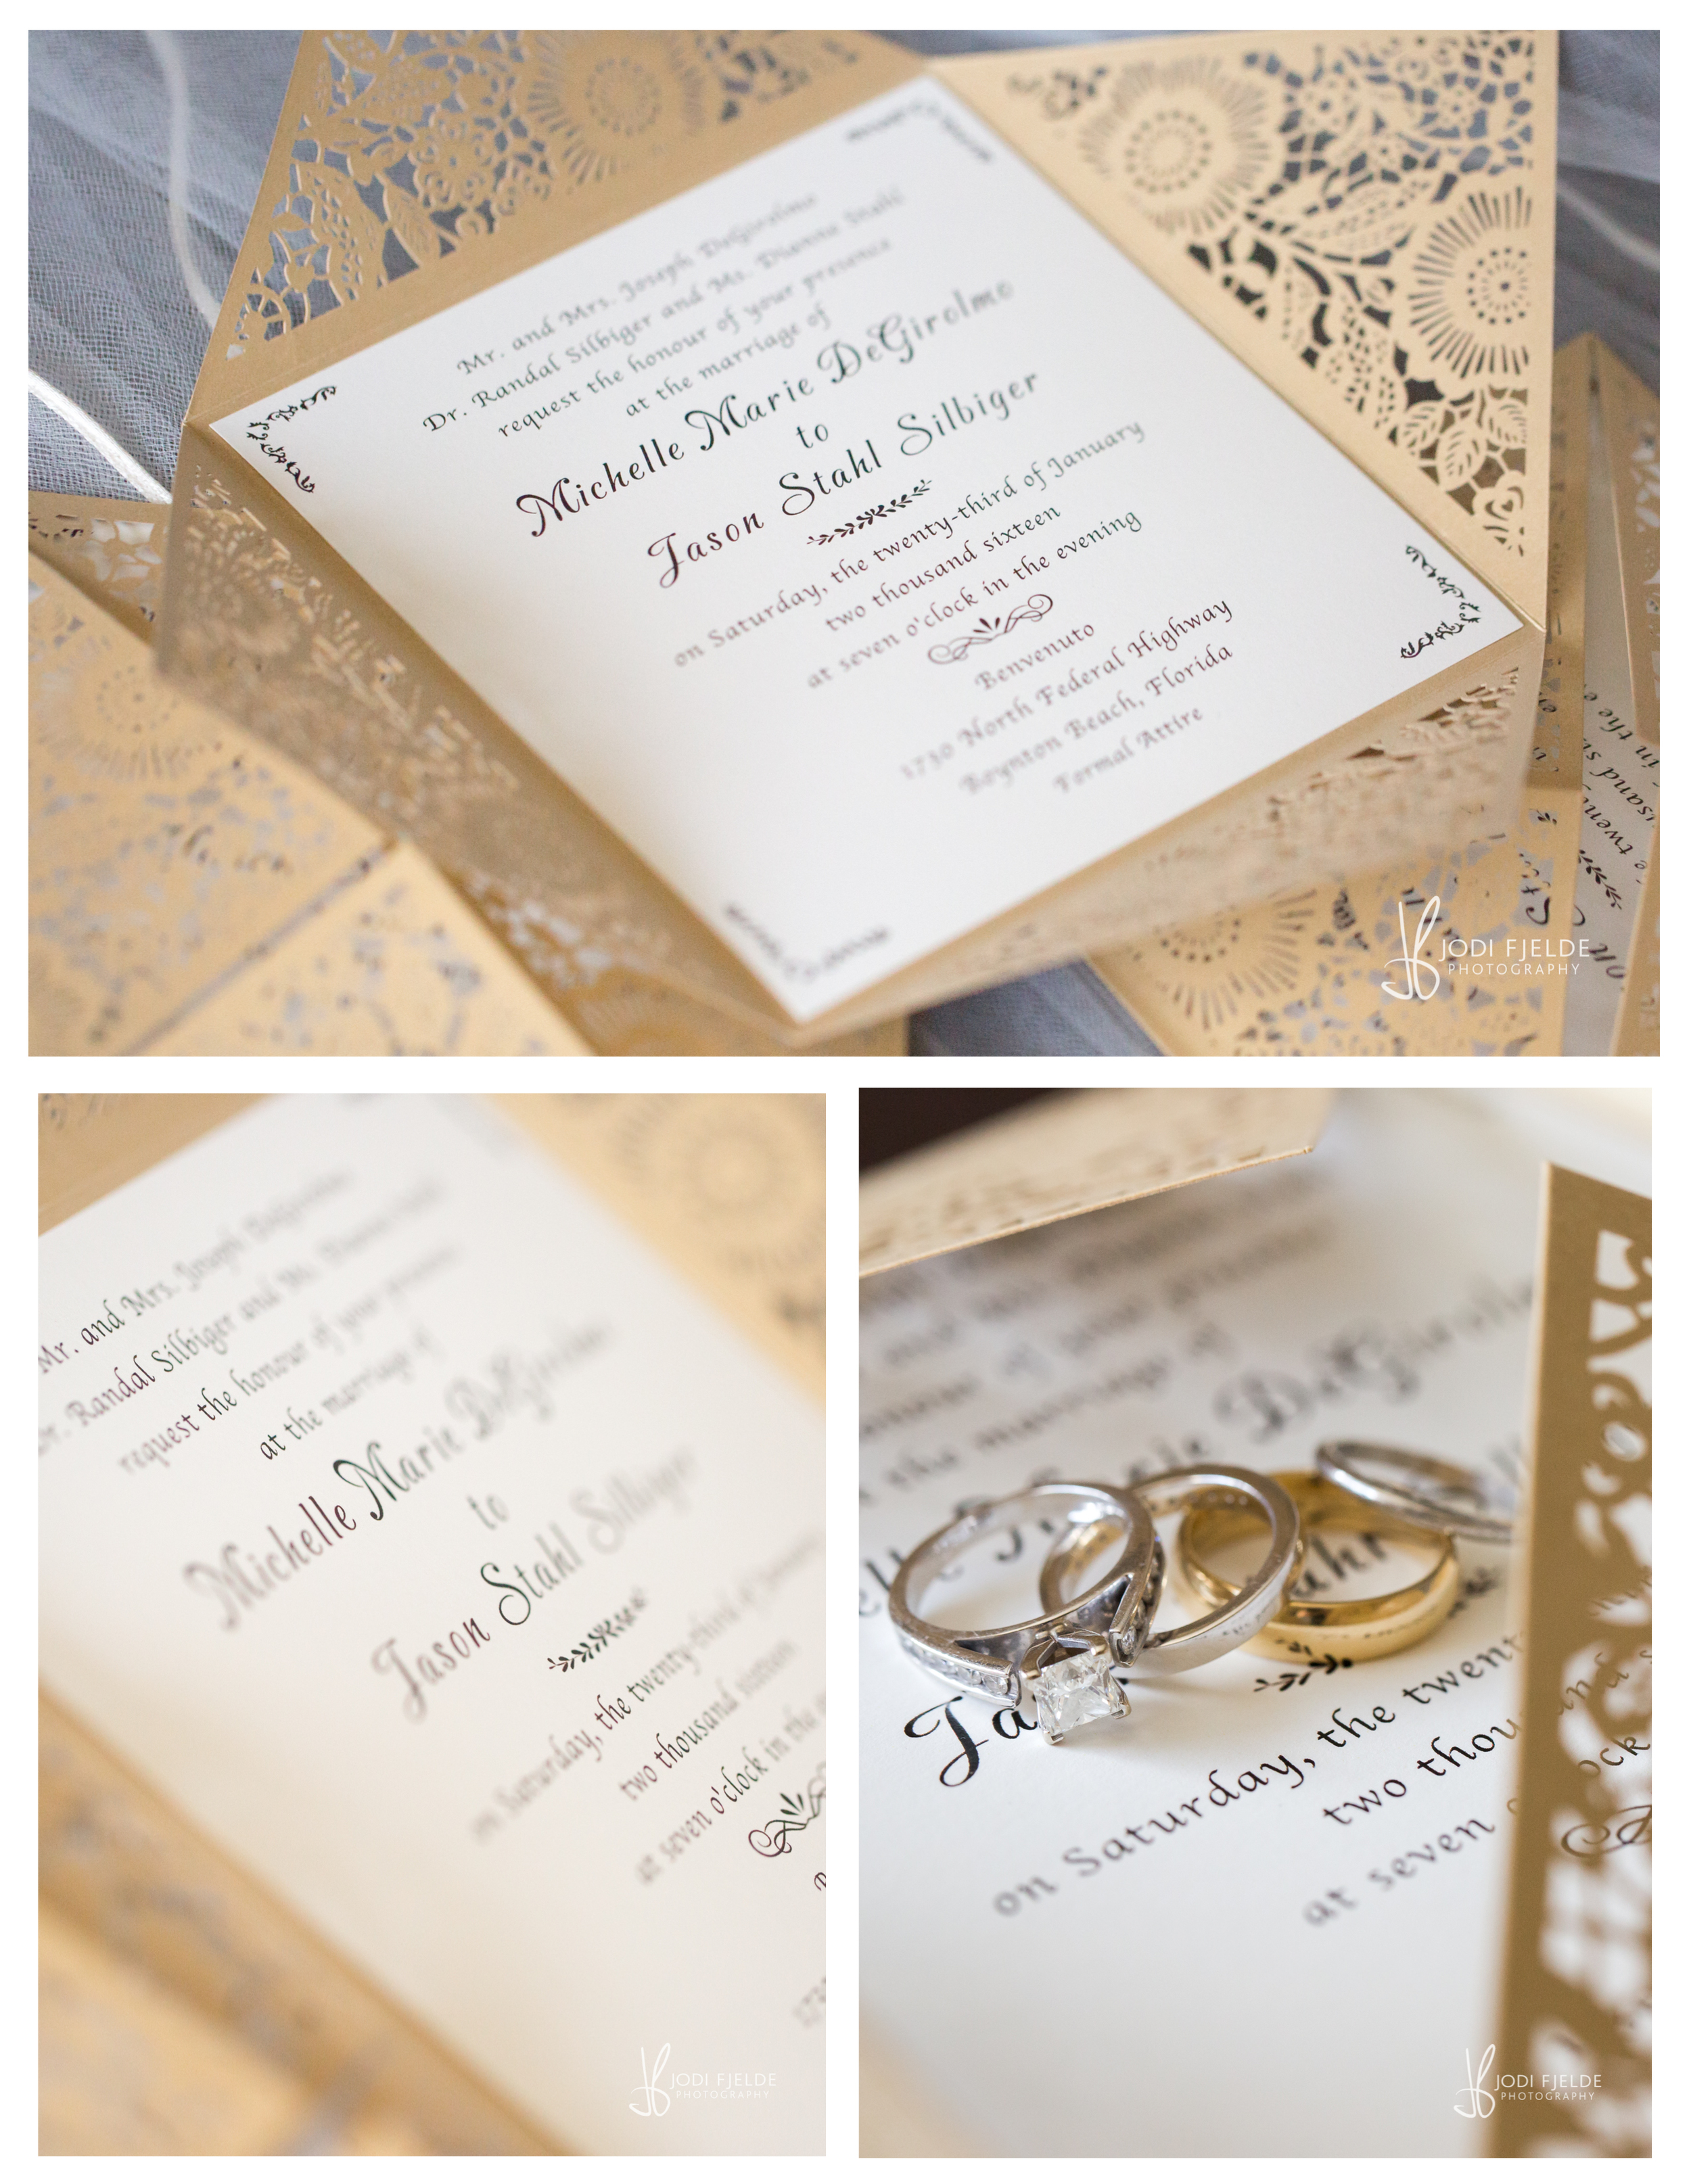 Benvenuto_Palm_Beach_Wedding_Jewish_Michelle & Jason_Jodi_Fjedle_Photography 2.jpg